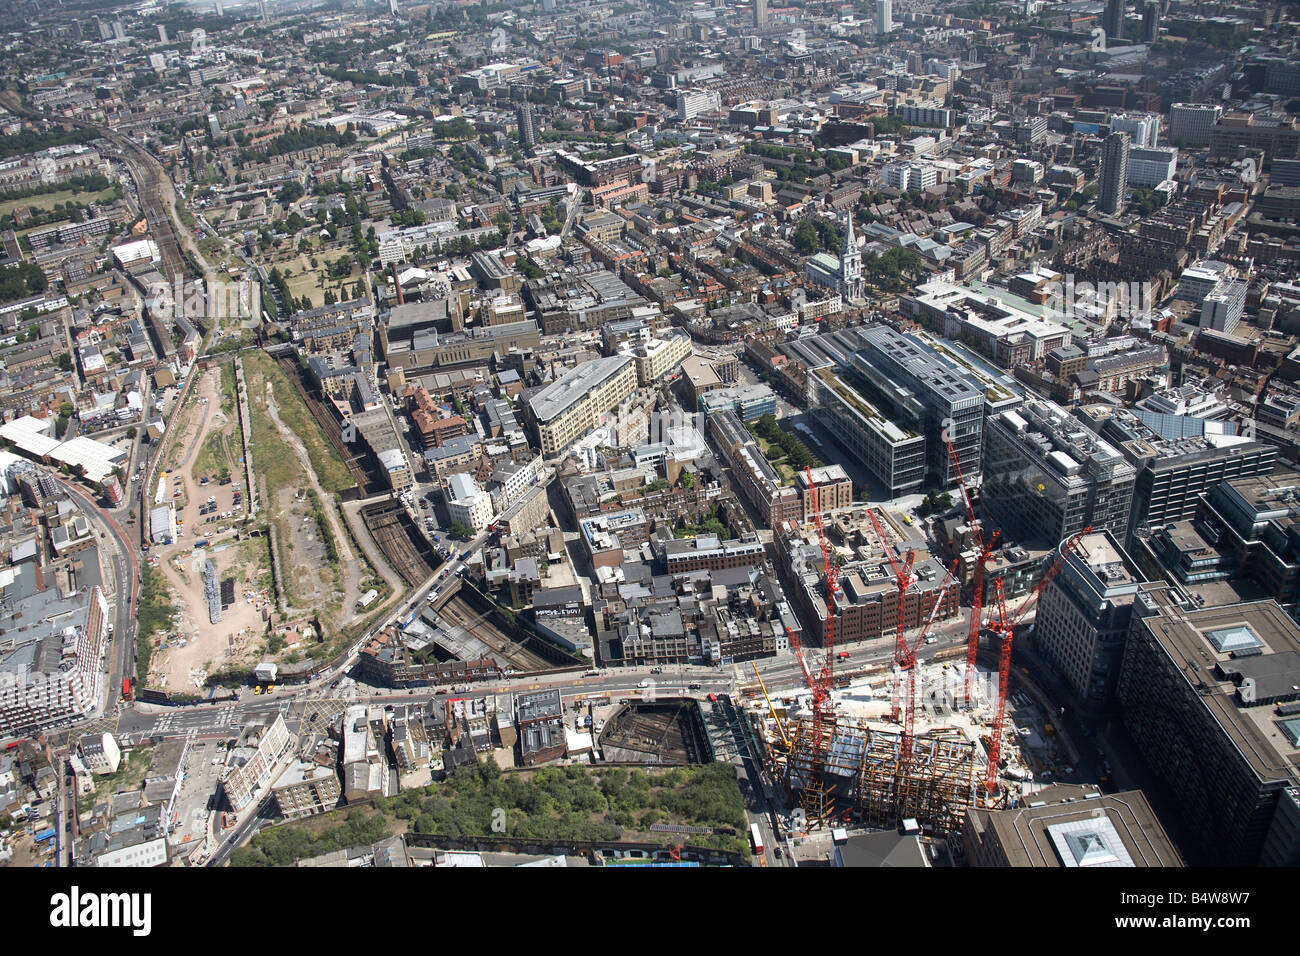 Aeril view south east of Broadgate Tower Construction Site Shoreditch High Street Commercial Street City of London - Stock Image